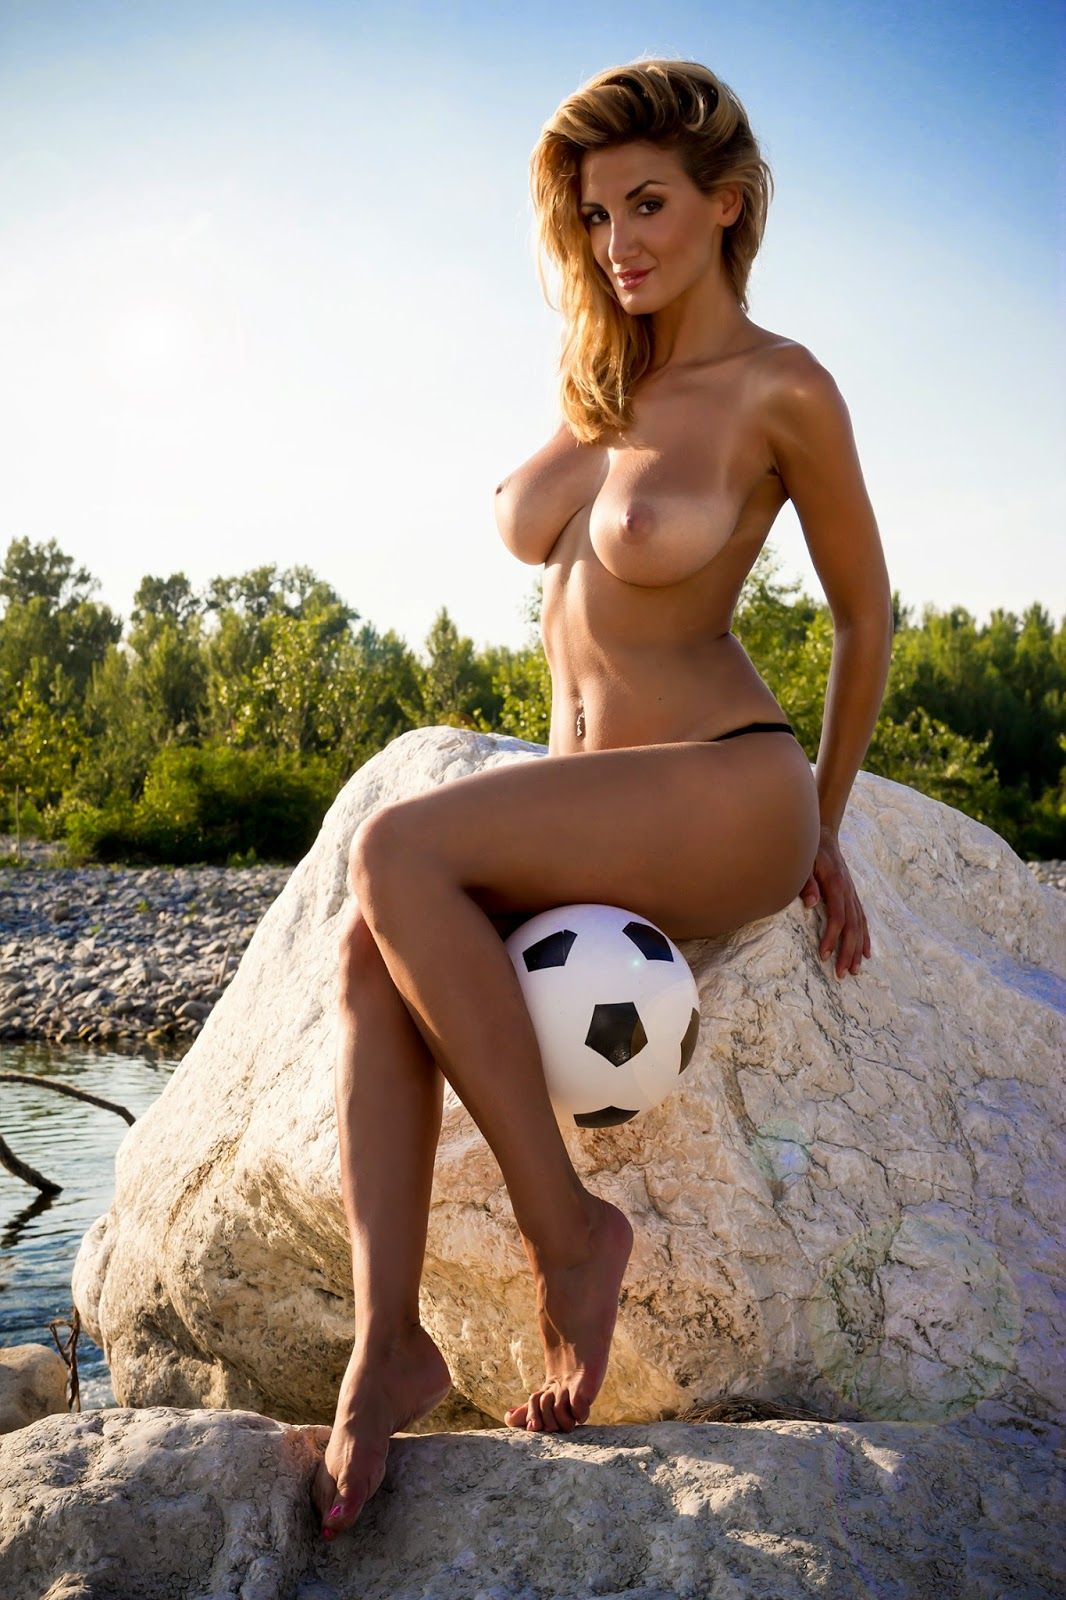 Rosy maggiulli nude backstage for parma 6